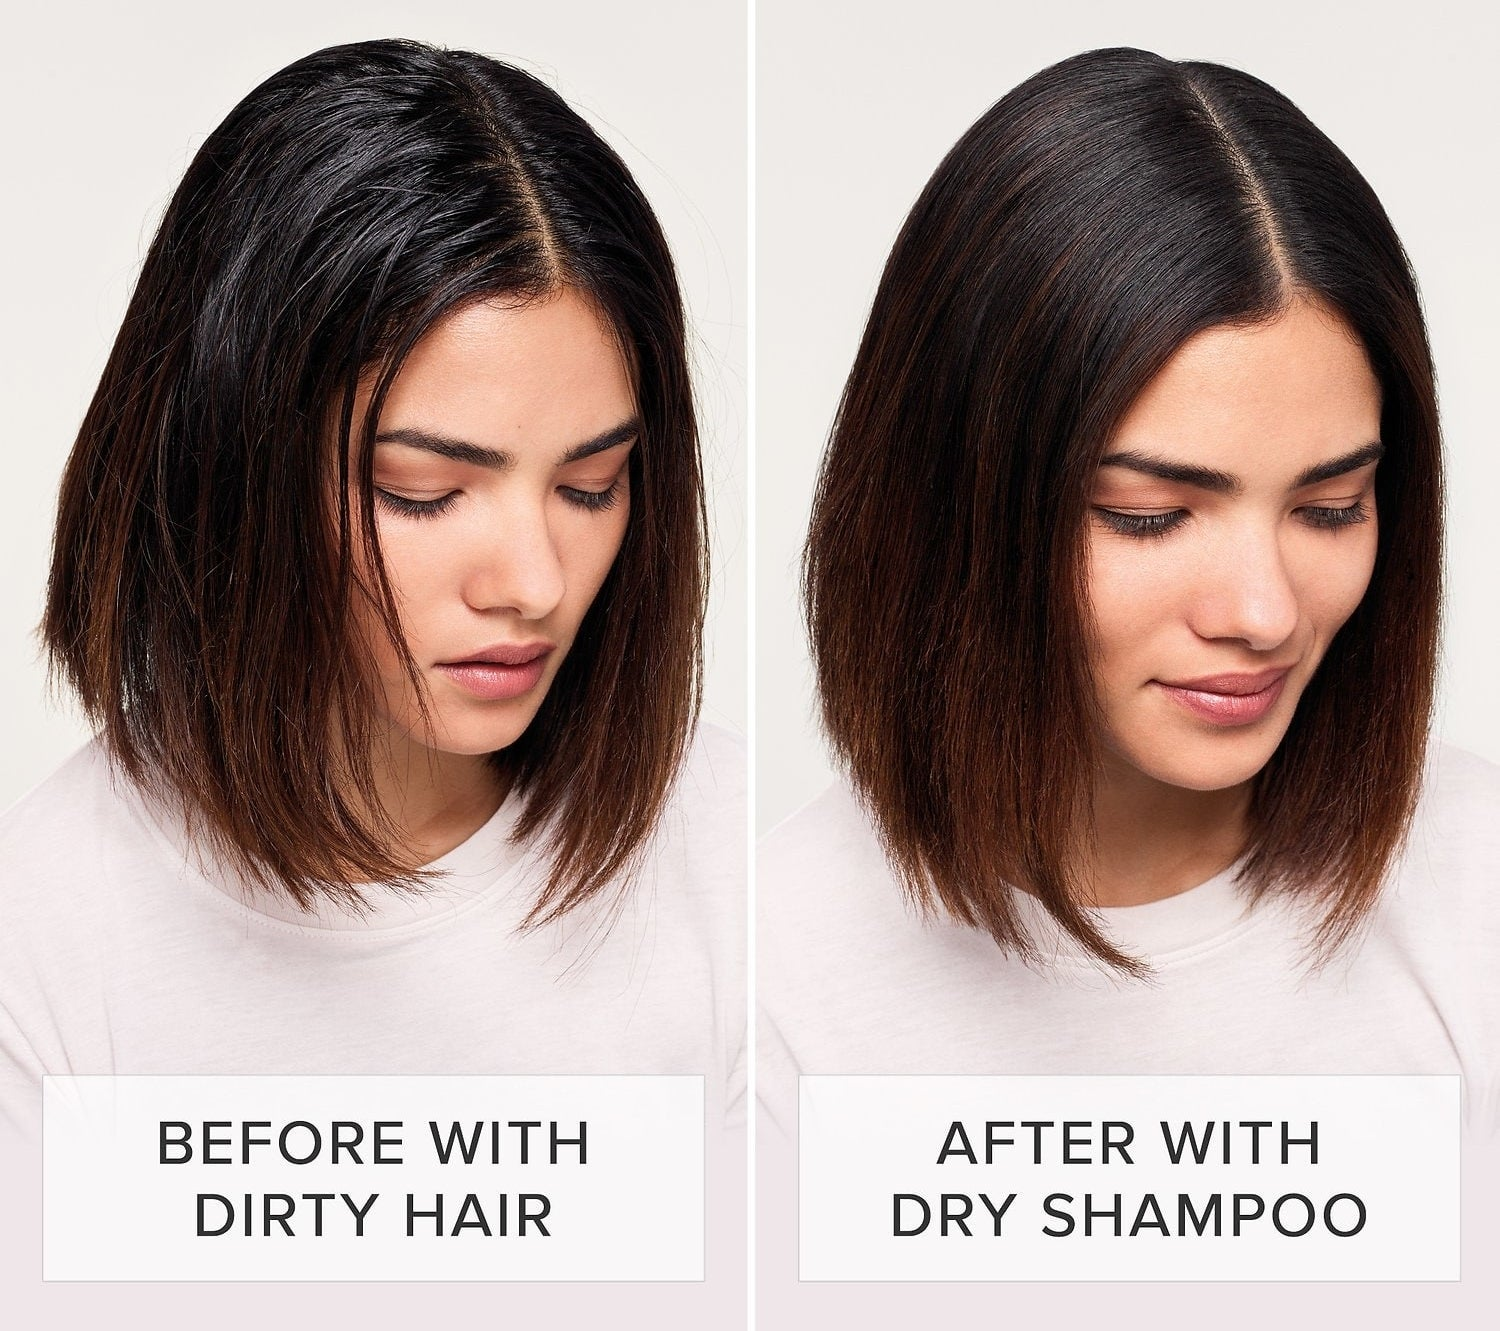 A model in a before/after showing dirty, greasy-looking hair before use and clean-looking hair after use